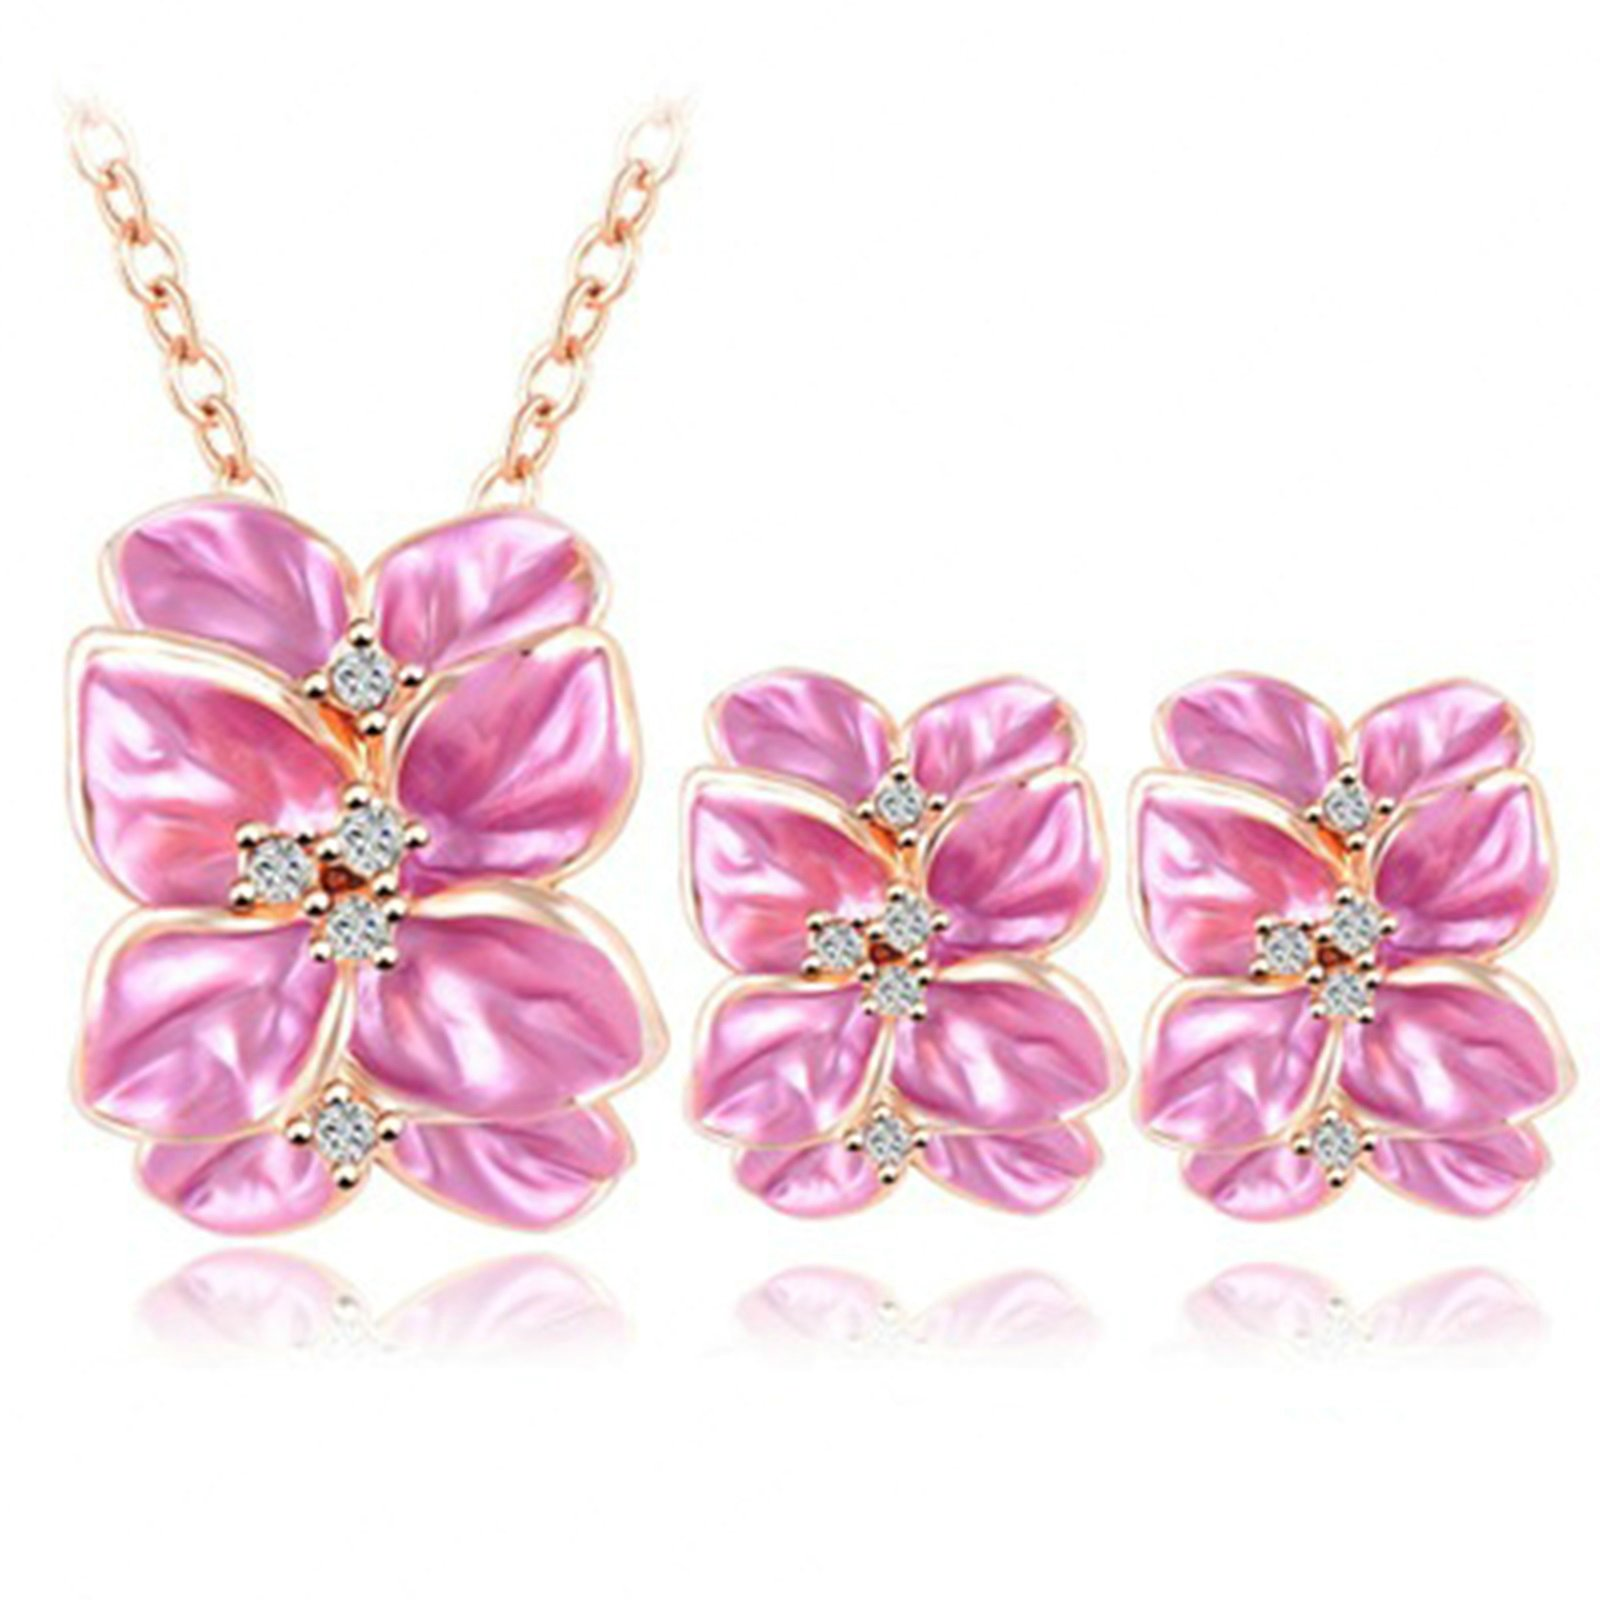 Daesar Silver Plated Necklace Earrings Jewelry Set for Women Elegant Flowers Cubic Zirconia Pink